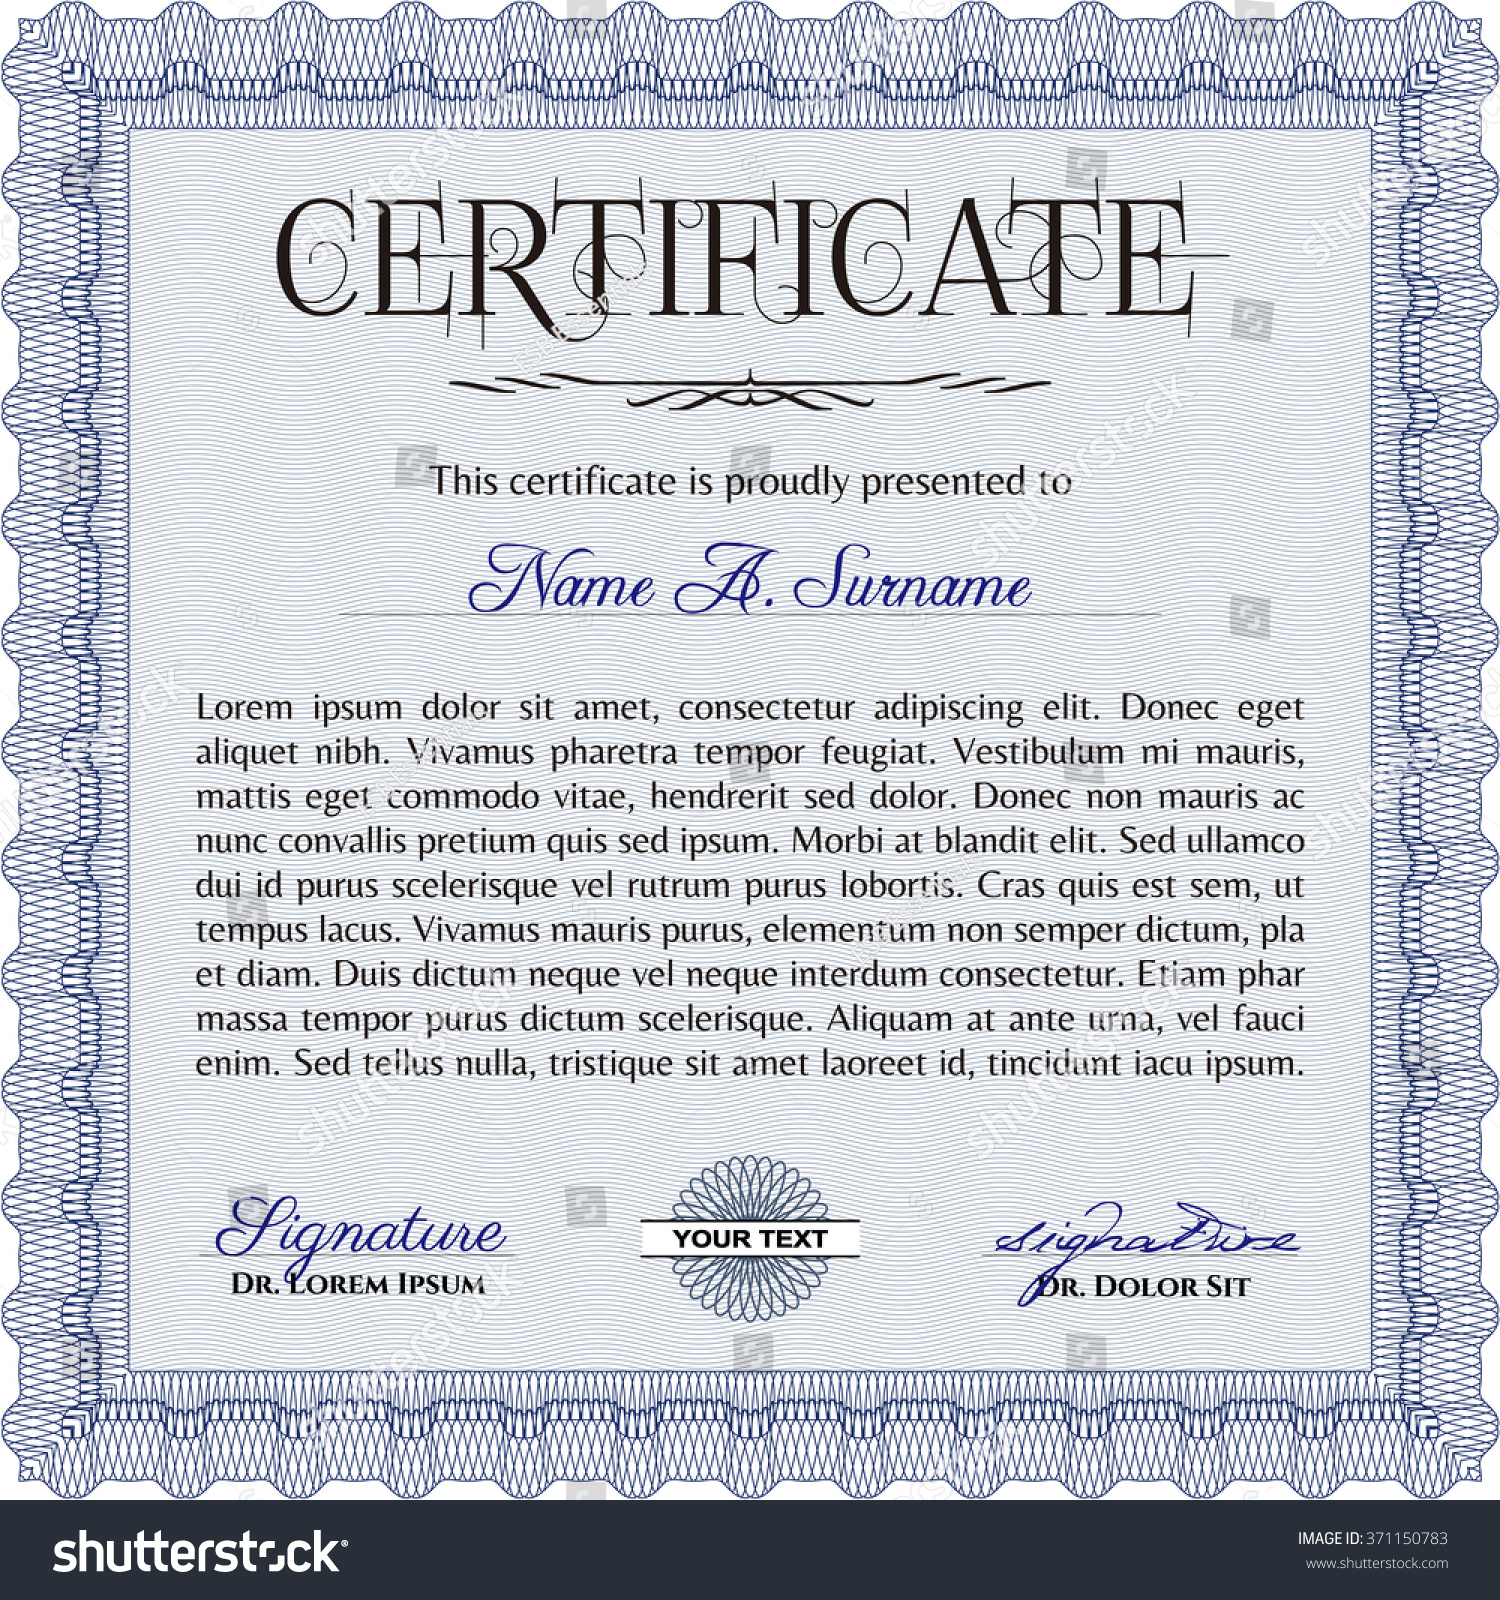 Share certificate template saskatchewan image collections comfortable football certificate templates free contemporary share certificate template saskatchewan images certificate yadclub image collections 1betcityfo Choice Image